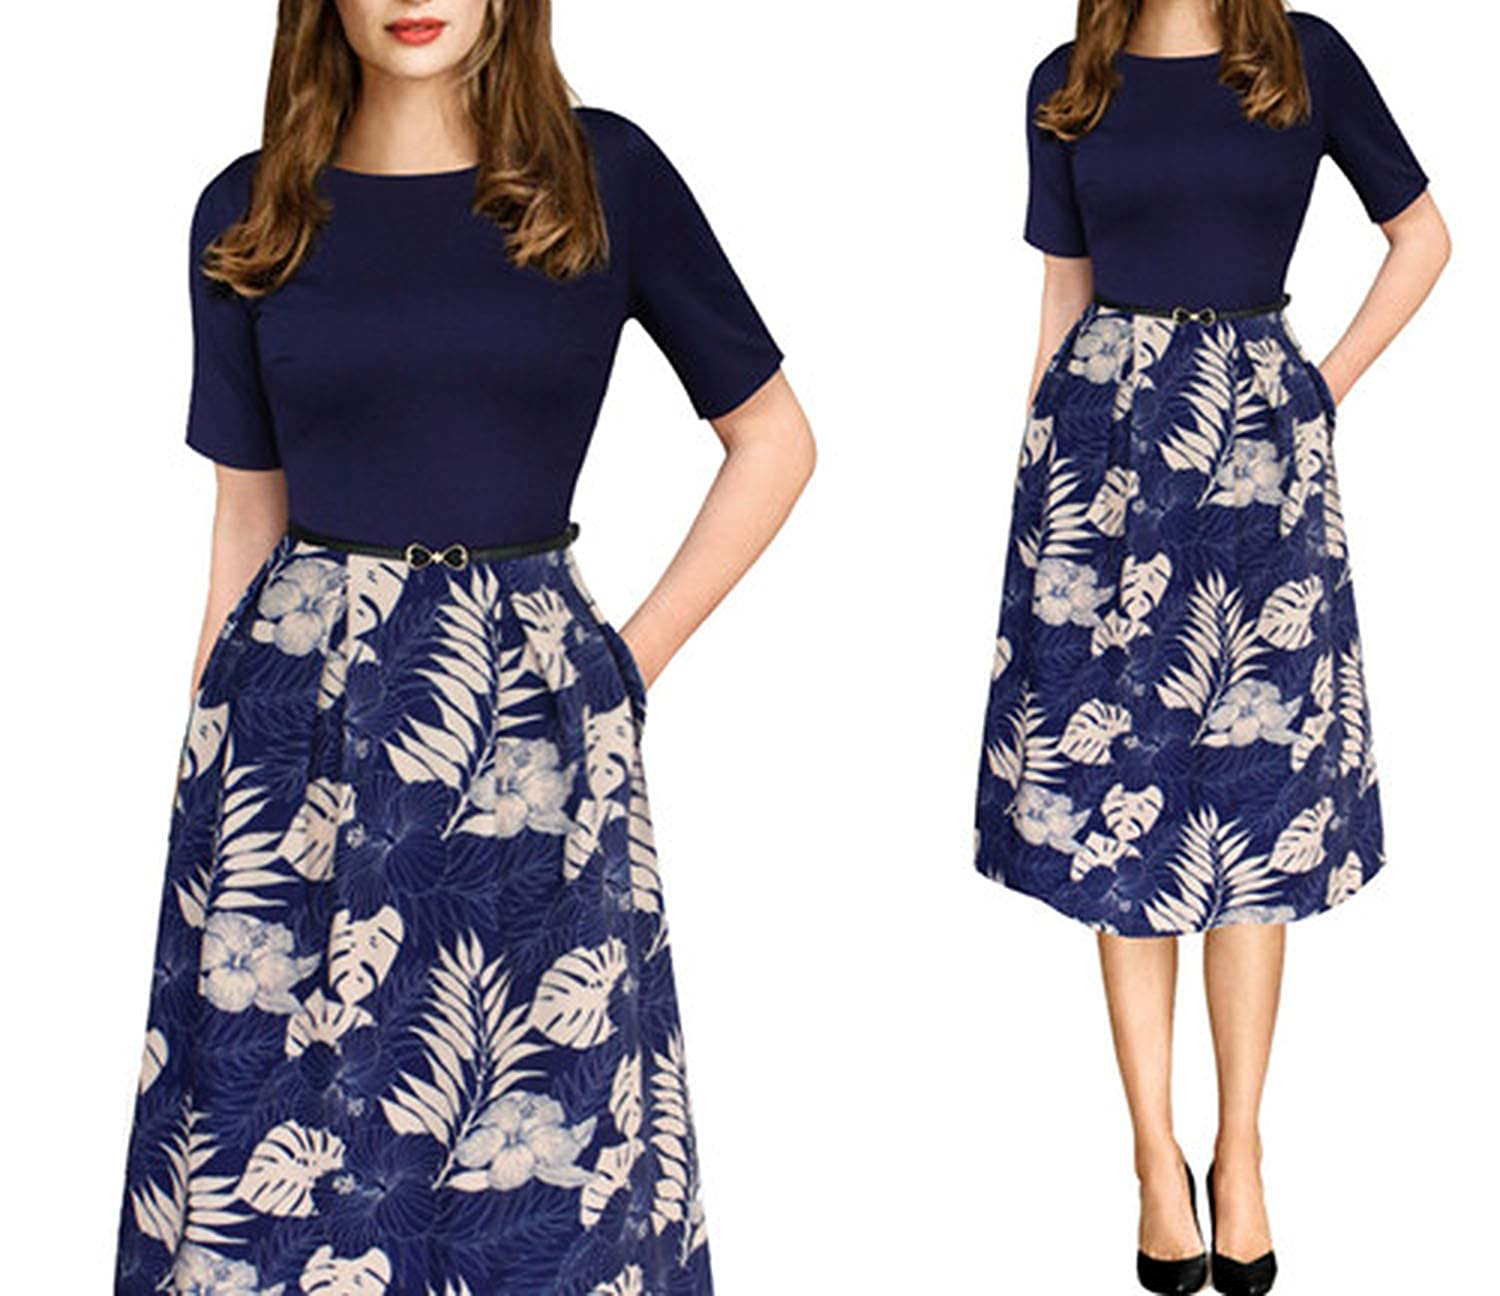 Dark bluee and Beige Fragrancety Womens Elegant Vintage Summer Polka Dot Belted Office Casual Party A Line Dress